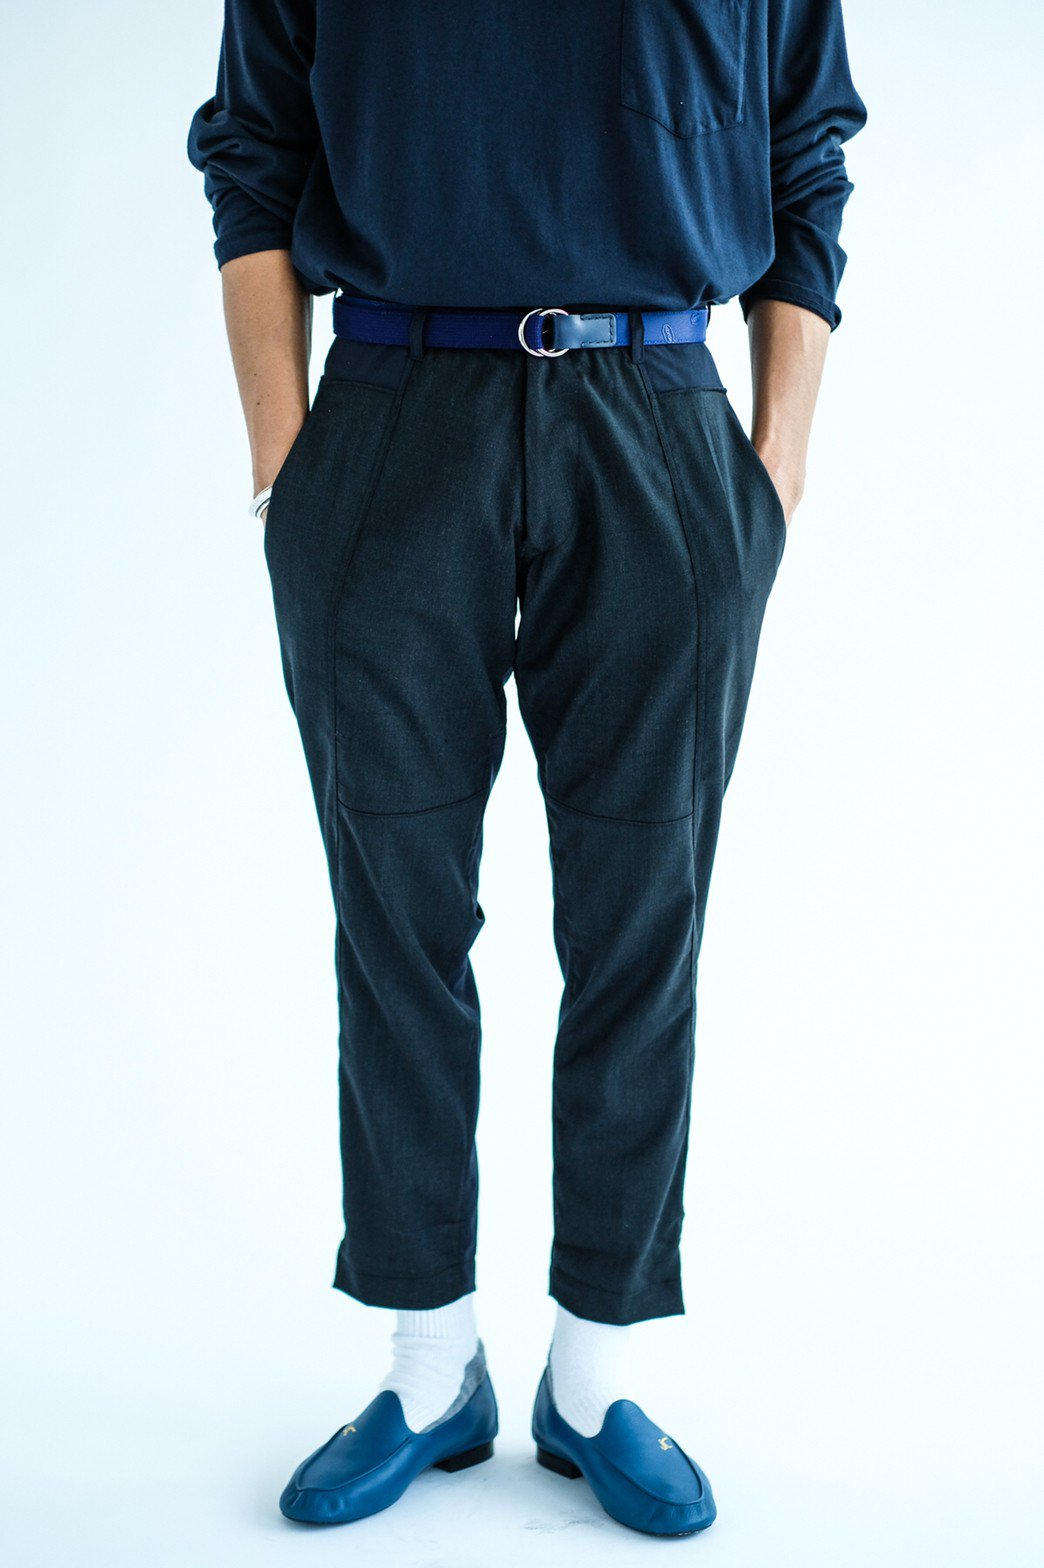 ORIGINAL MADE by IMA:ZINE / TAPERED SLACKS(NAVY × GREY)